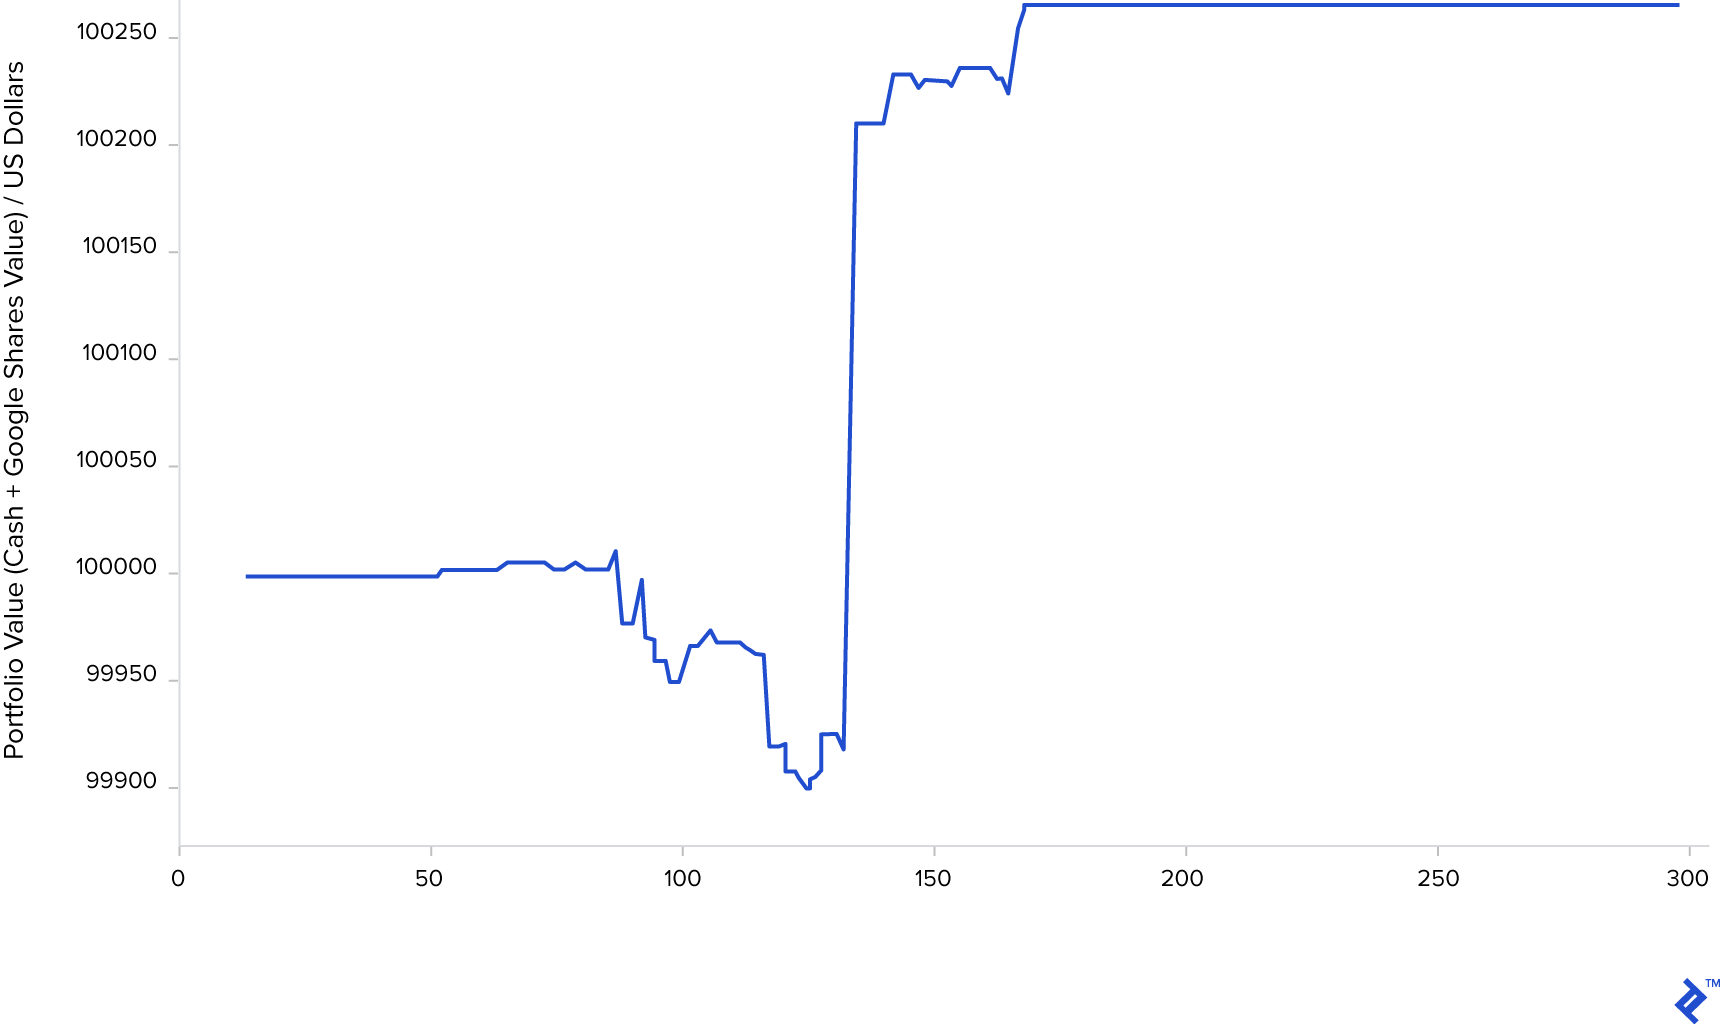 Deep Learning finance graph showing the simulation on unseen data